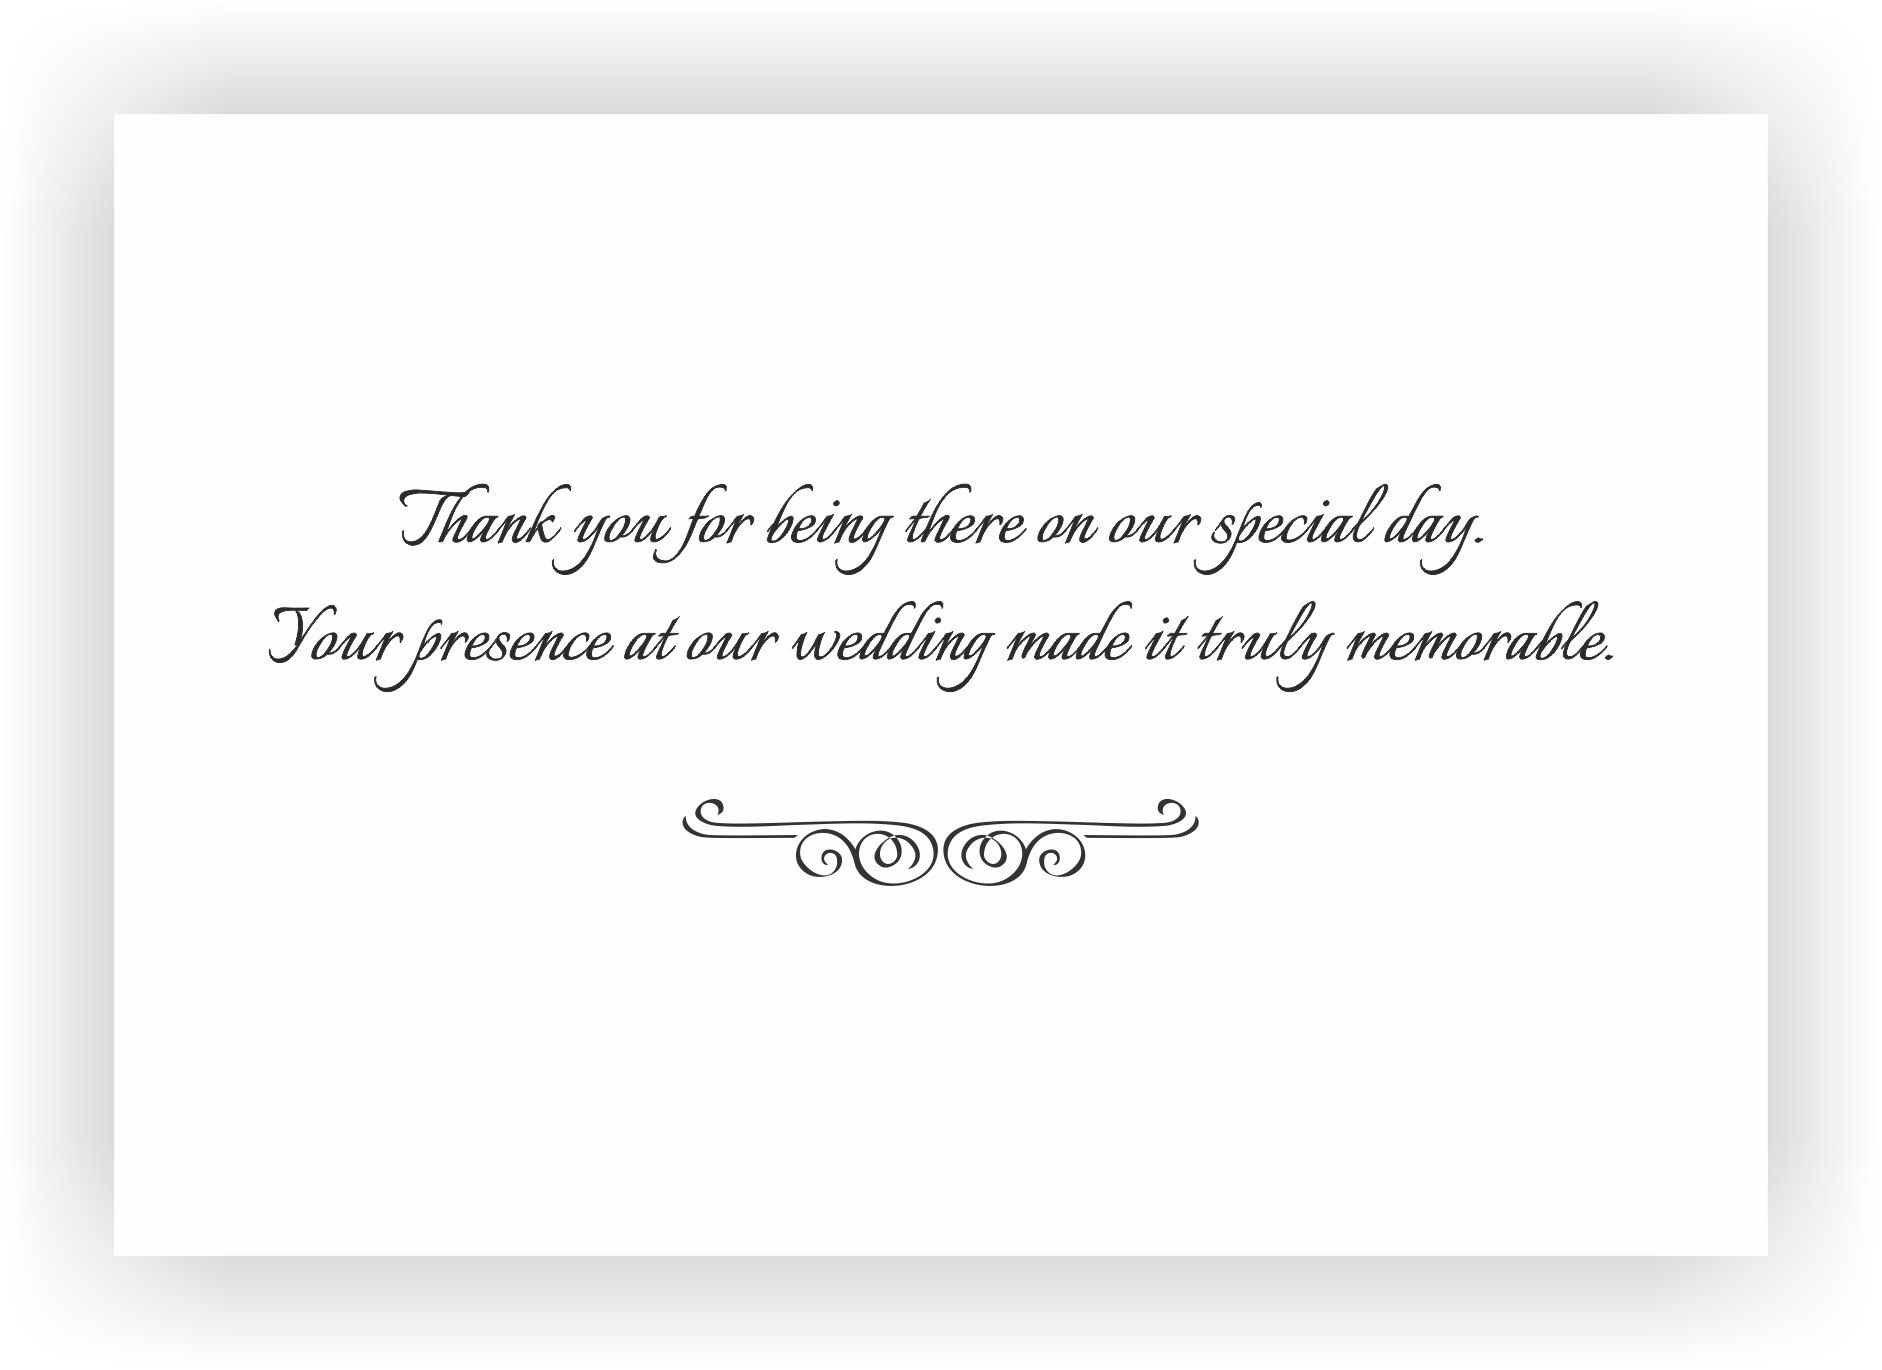 Wedding Present Message Wedding Thank You For A Large Amount Of